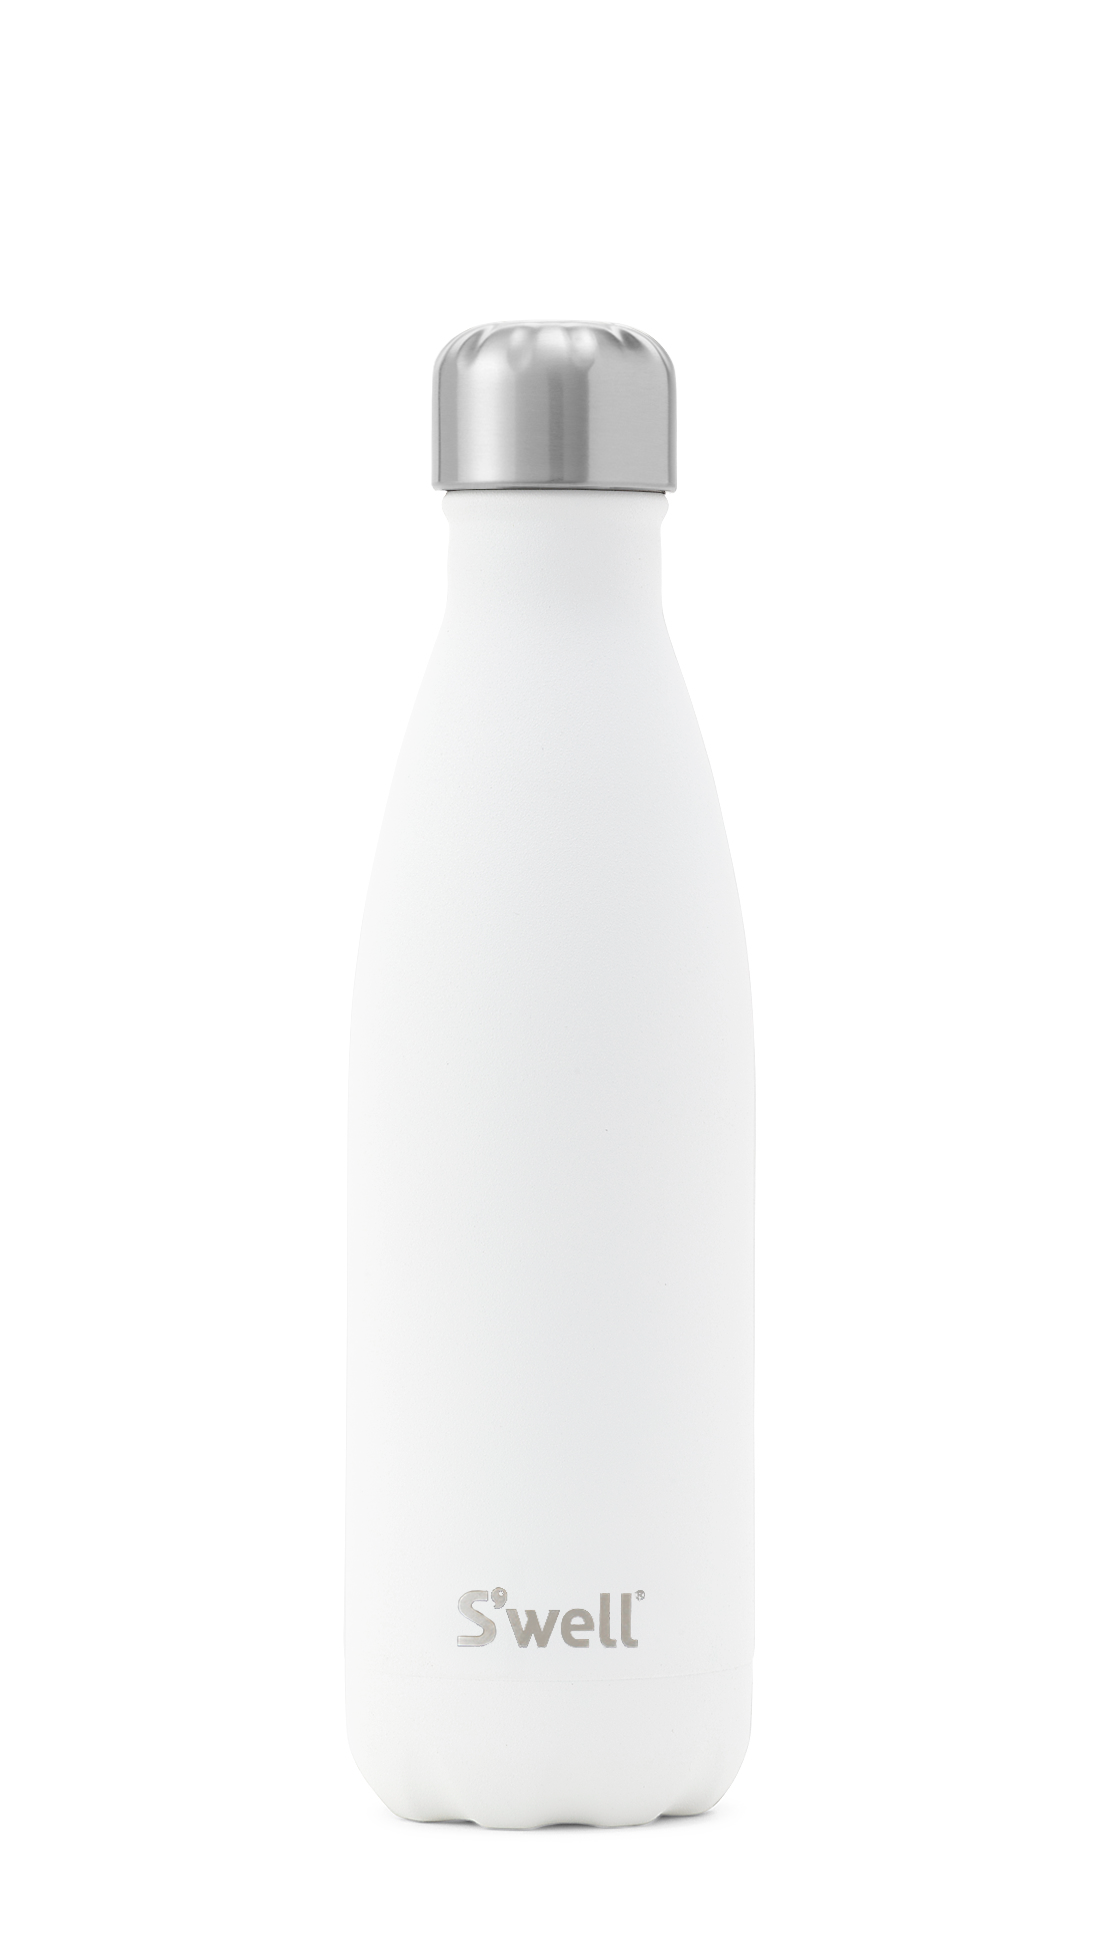 Moonstone Insulated Stainless Steel Water Bottle S Well